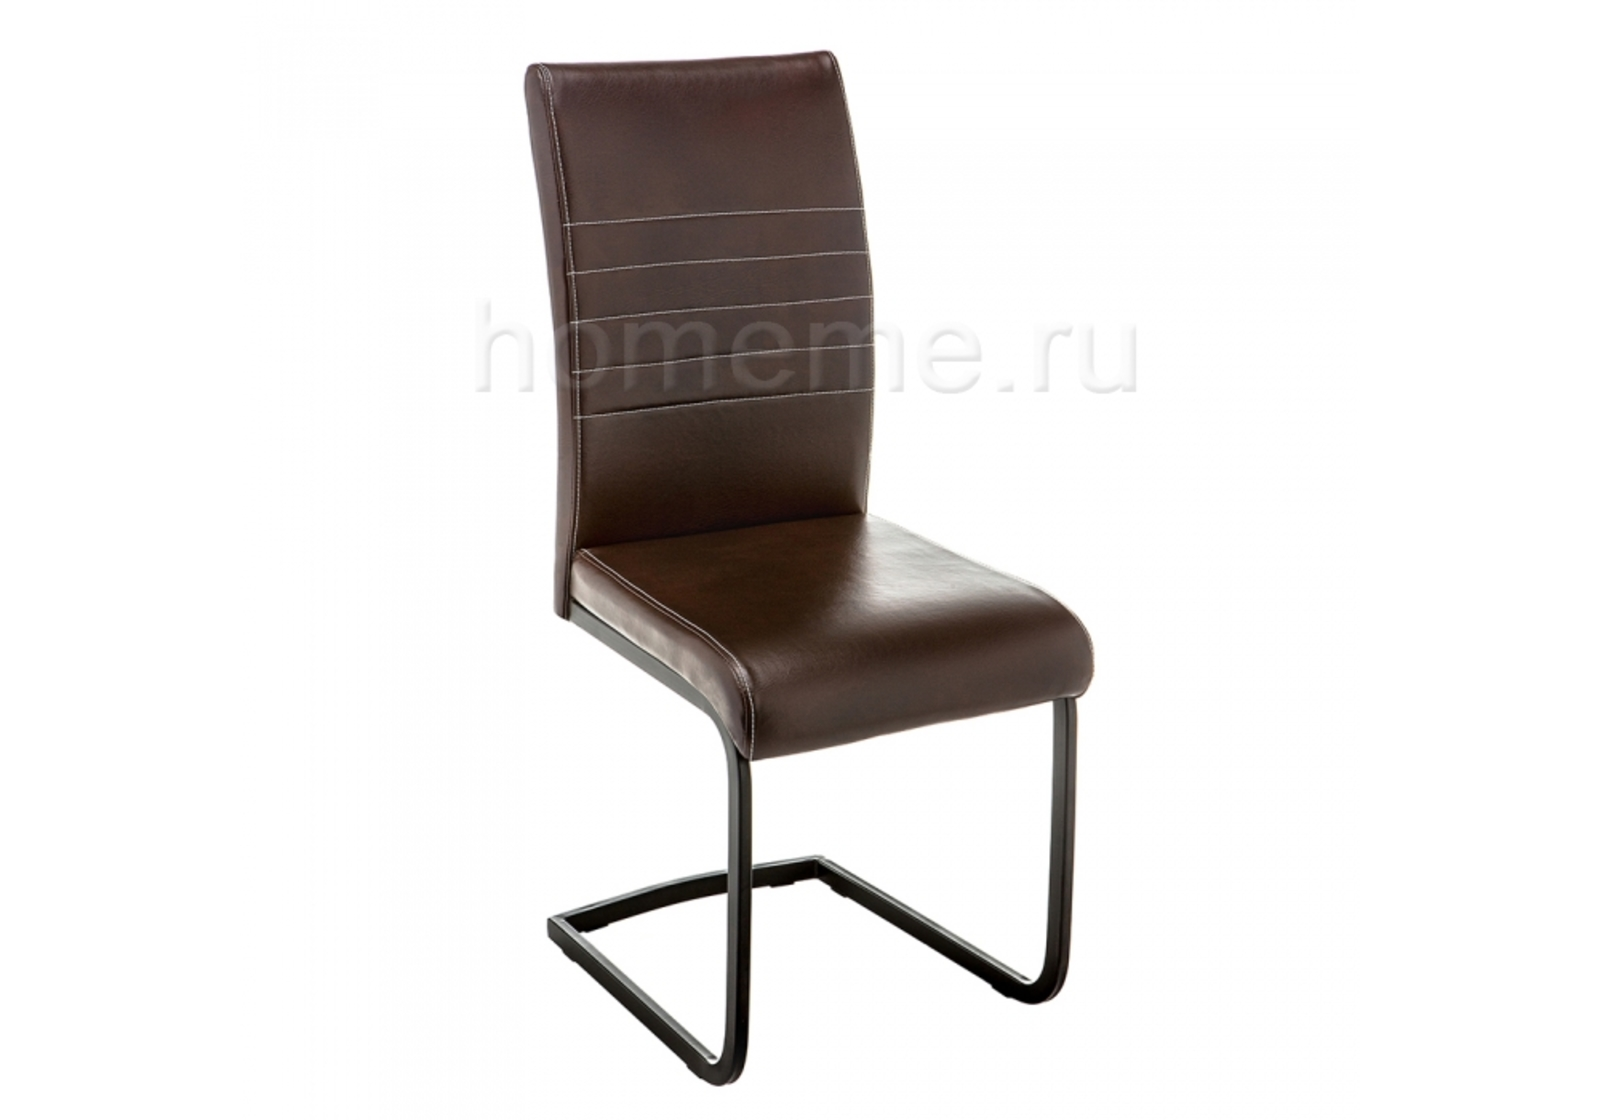 Стул Porte shiny brown 11207 Porte shiny brown 11207 (15918)